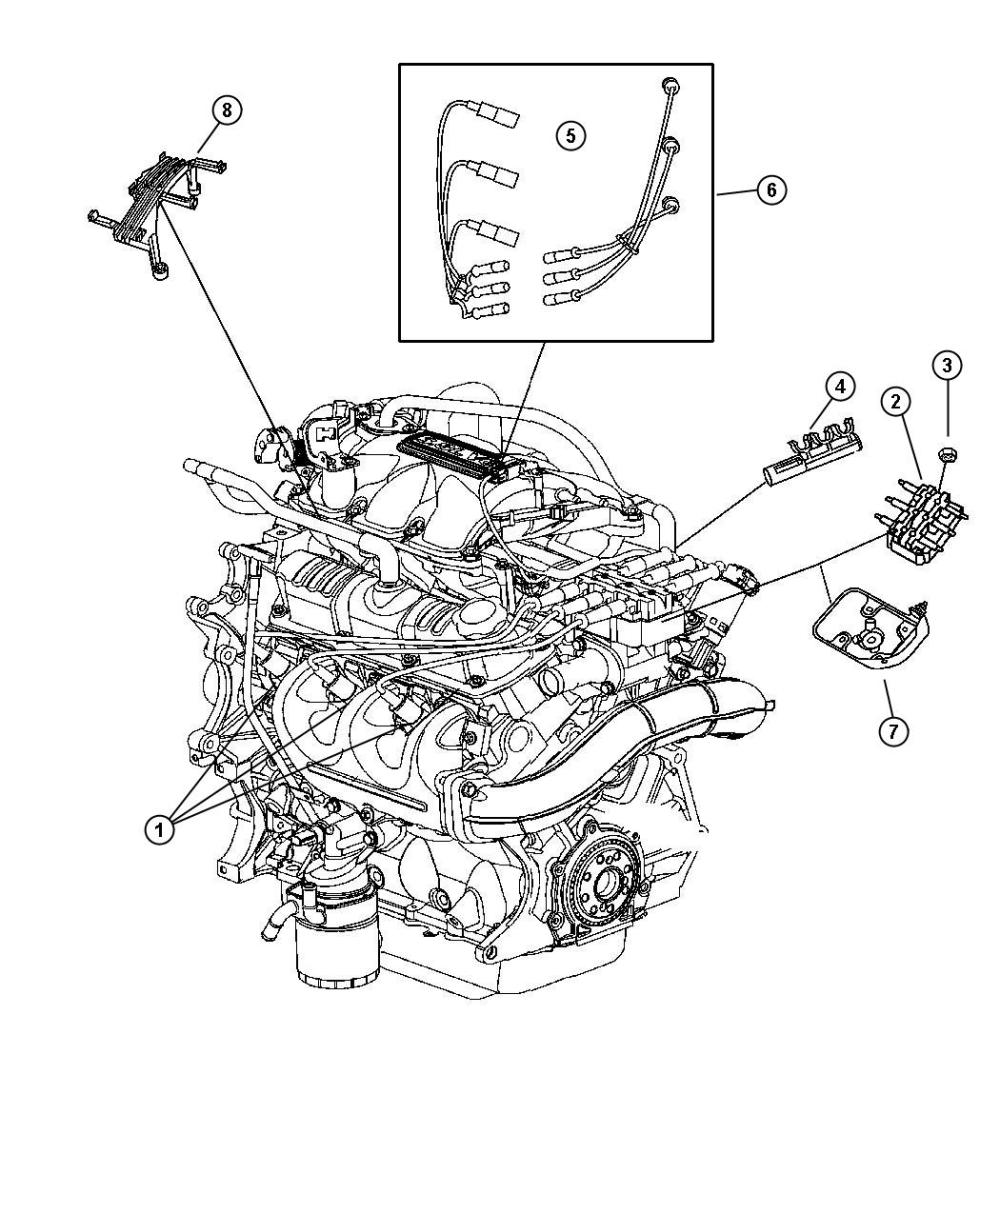 medium resolution of  2010 chrysler town and country parts diagram 2009 chrysler town country cable ignition